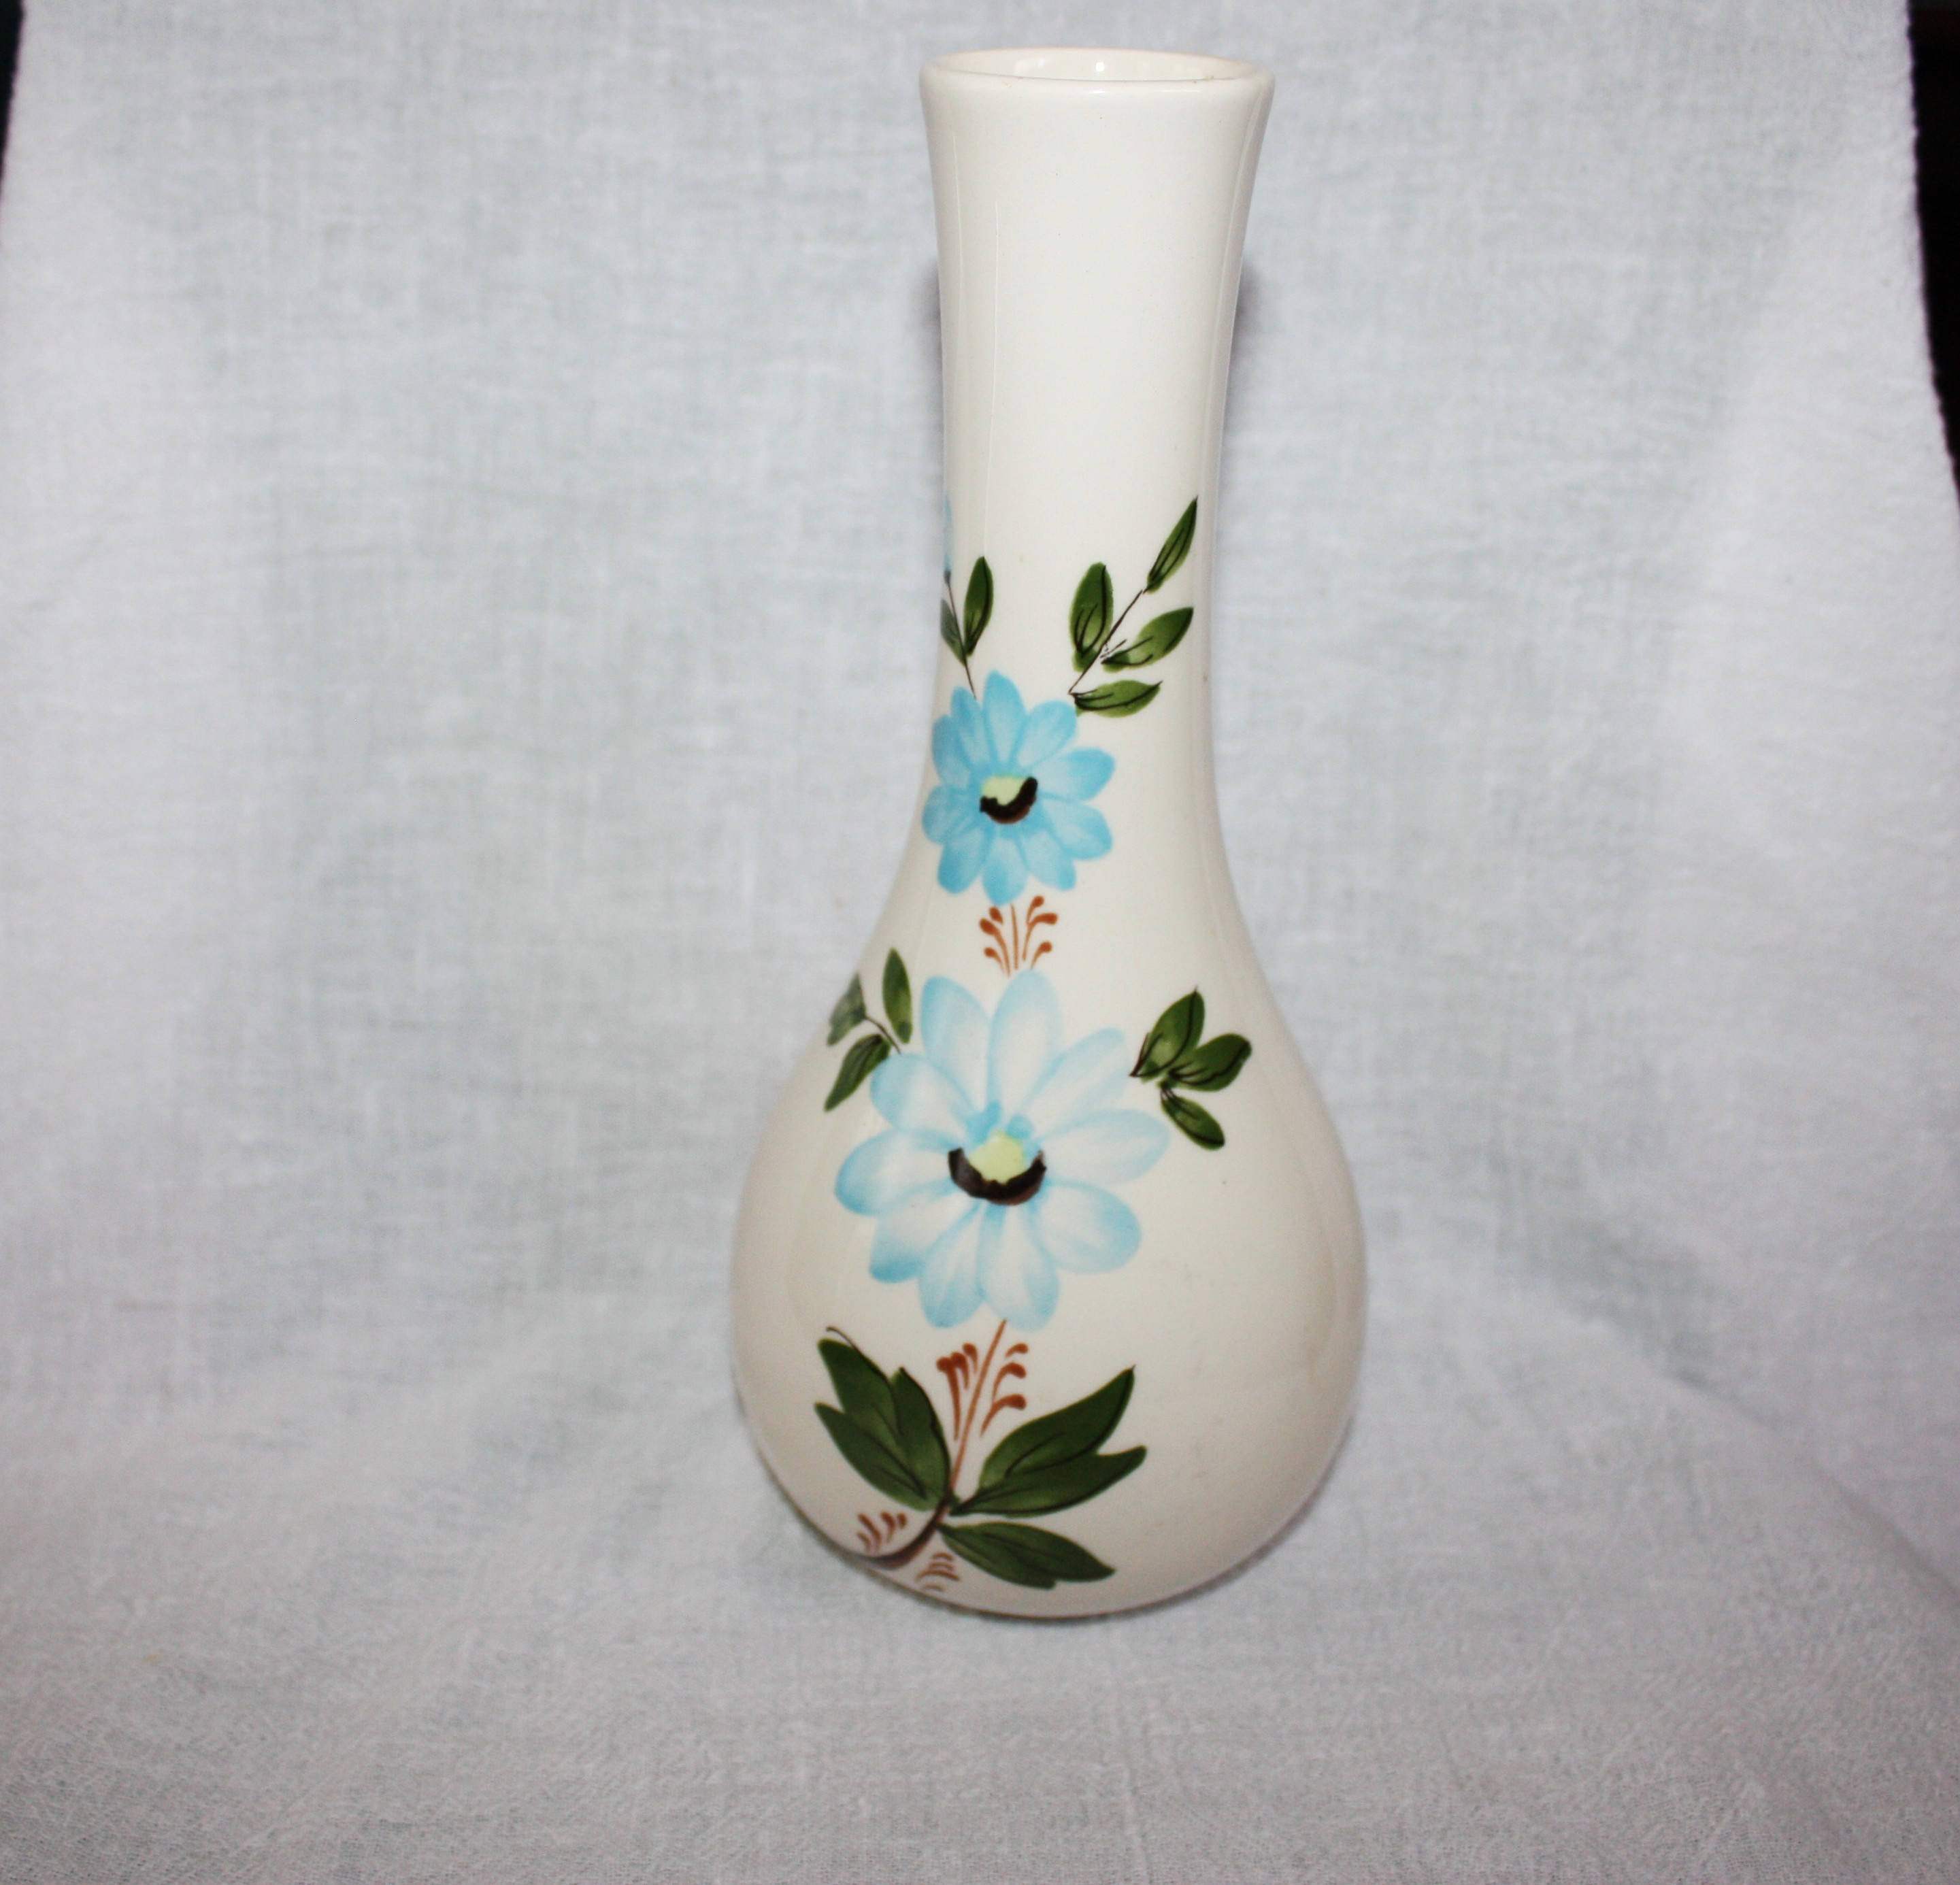 pottery craft usa vase of vintage 1979 sado portugal vase for ftda blue flowers etsy with regard to image 0